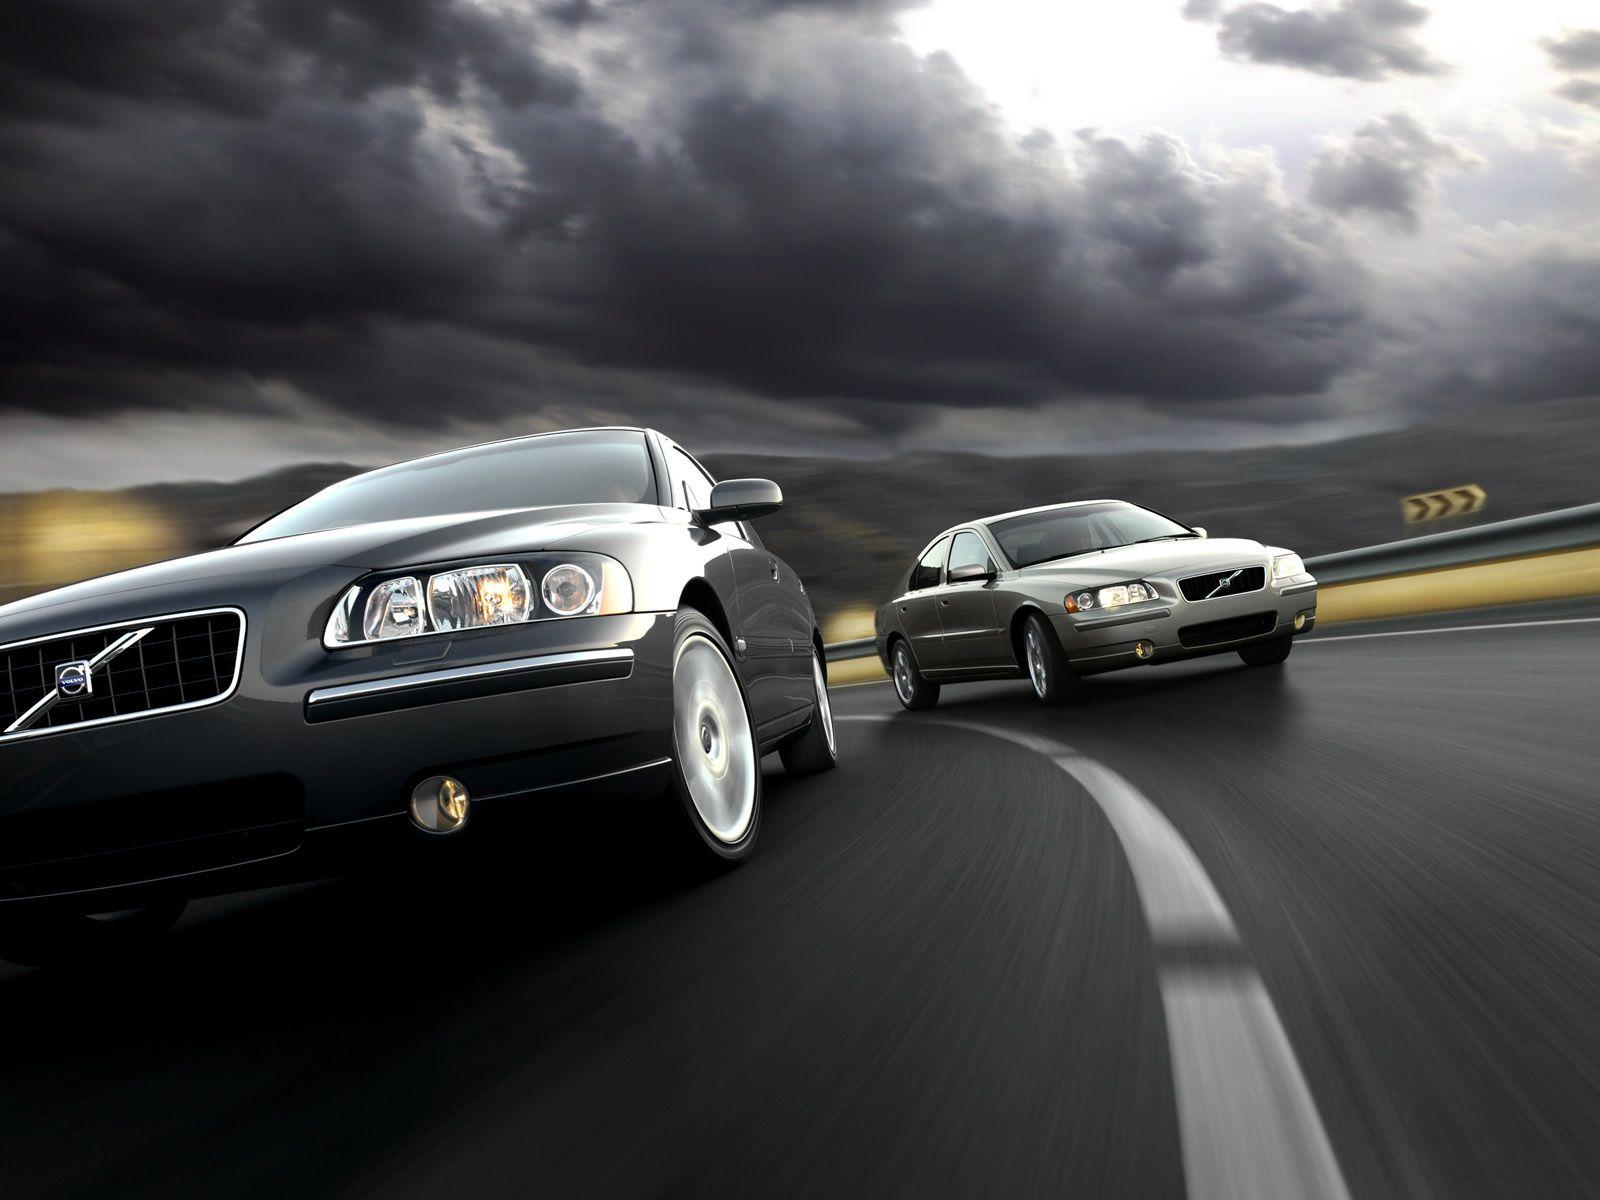 Volvo S60 Wallpapers 9